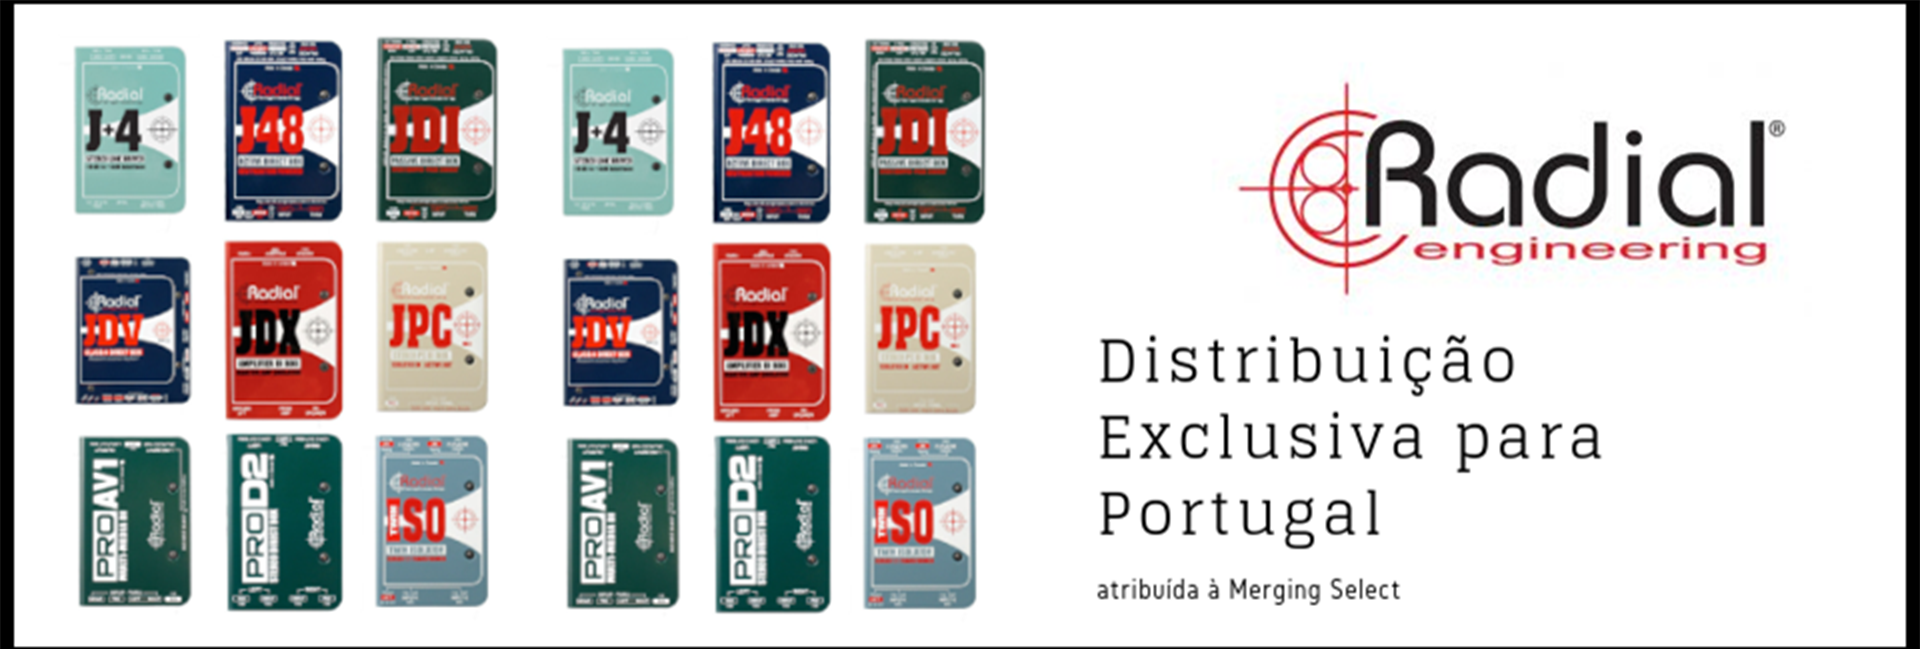 radial_distribuio_exclusiva